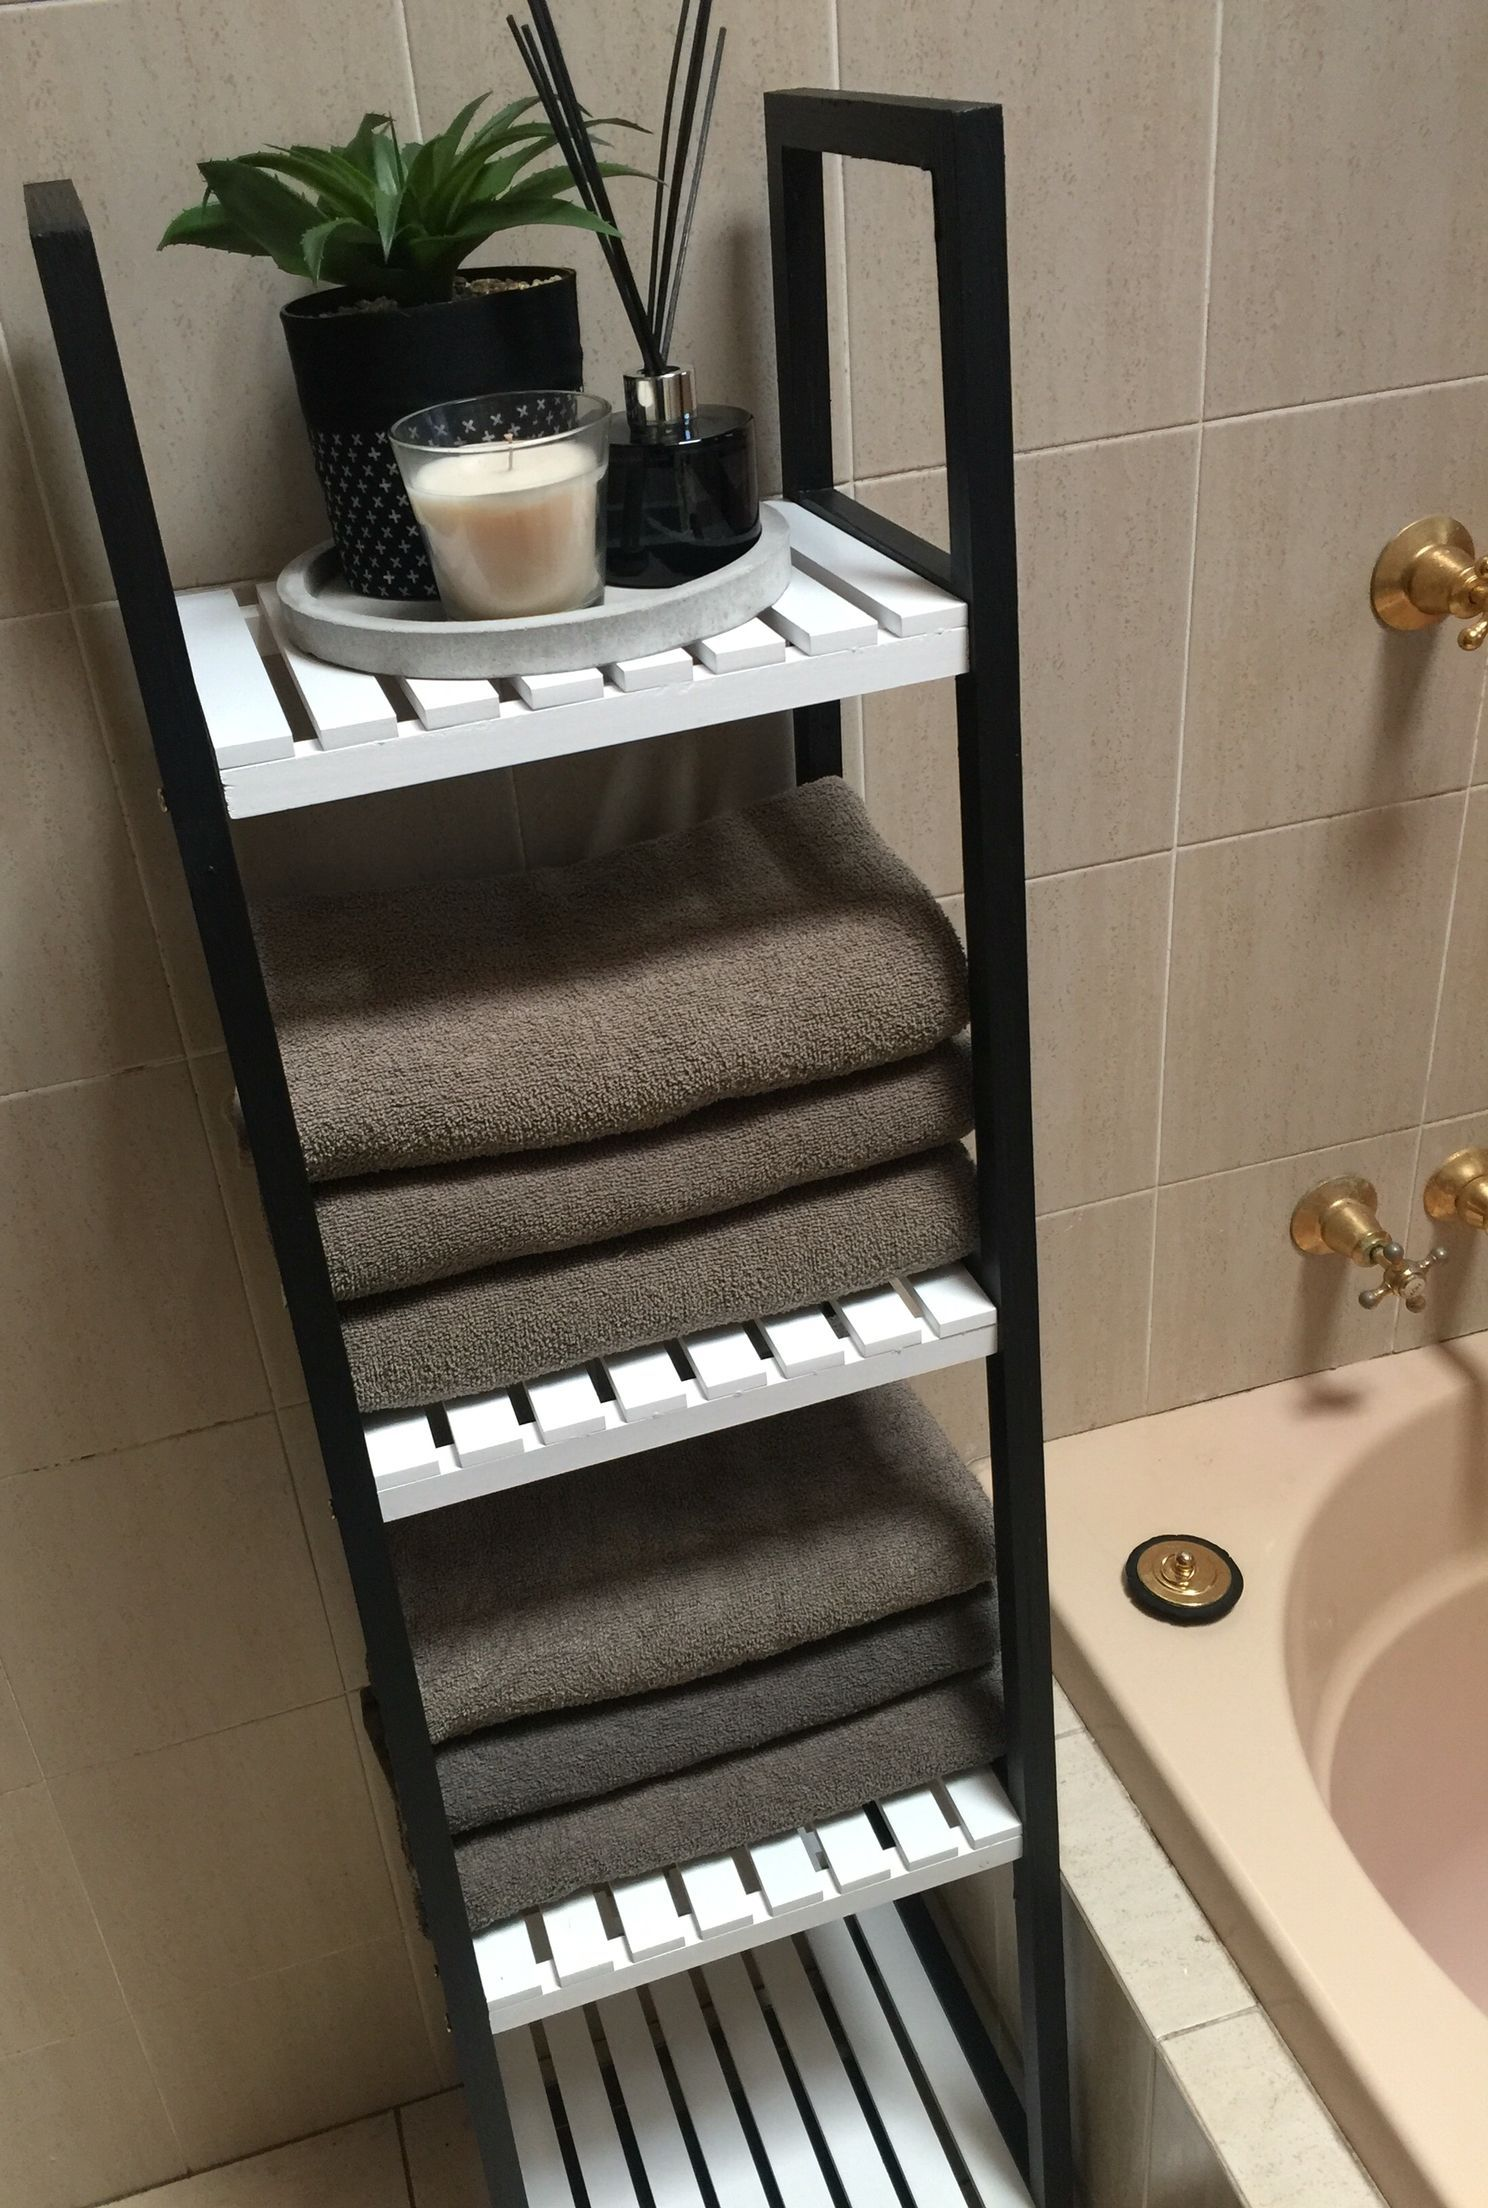 Kmart Hack Bathroom Caddy Shelves Painted Black And White To Make It More Modern Kmarthack In 2020 Simple Bathroom Remodel Small Bathroom Decor Bathroom Caddy